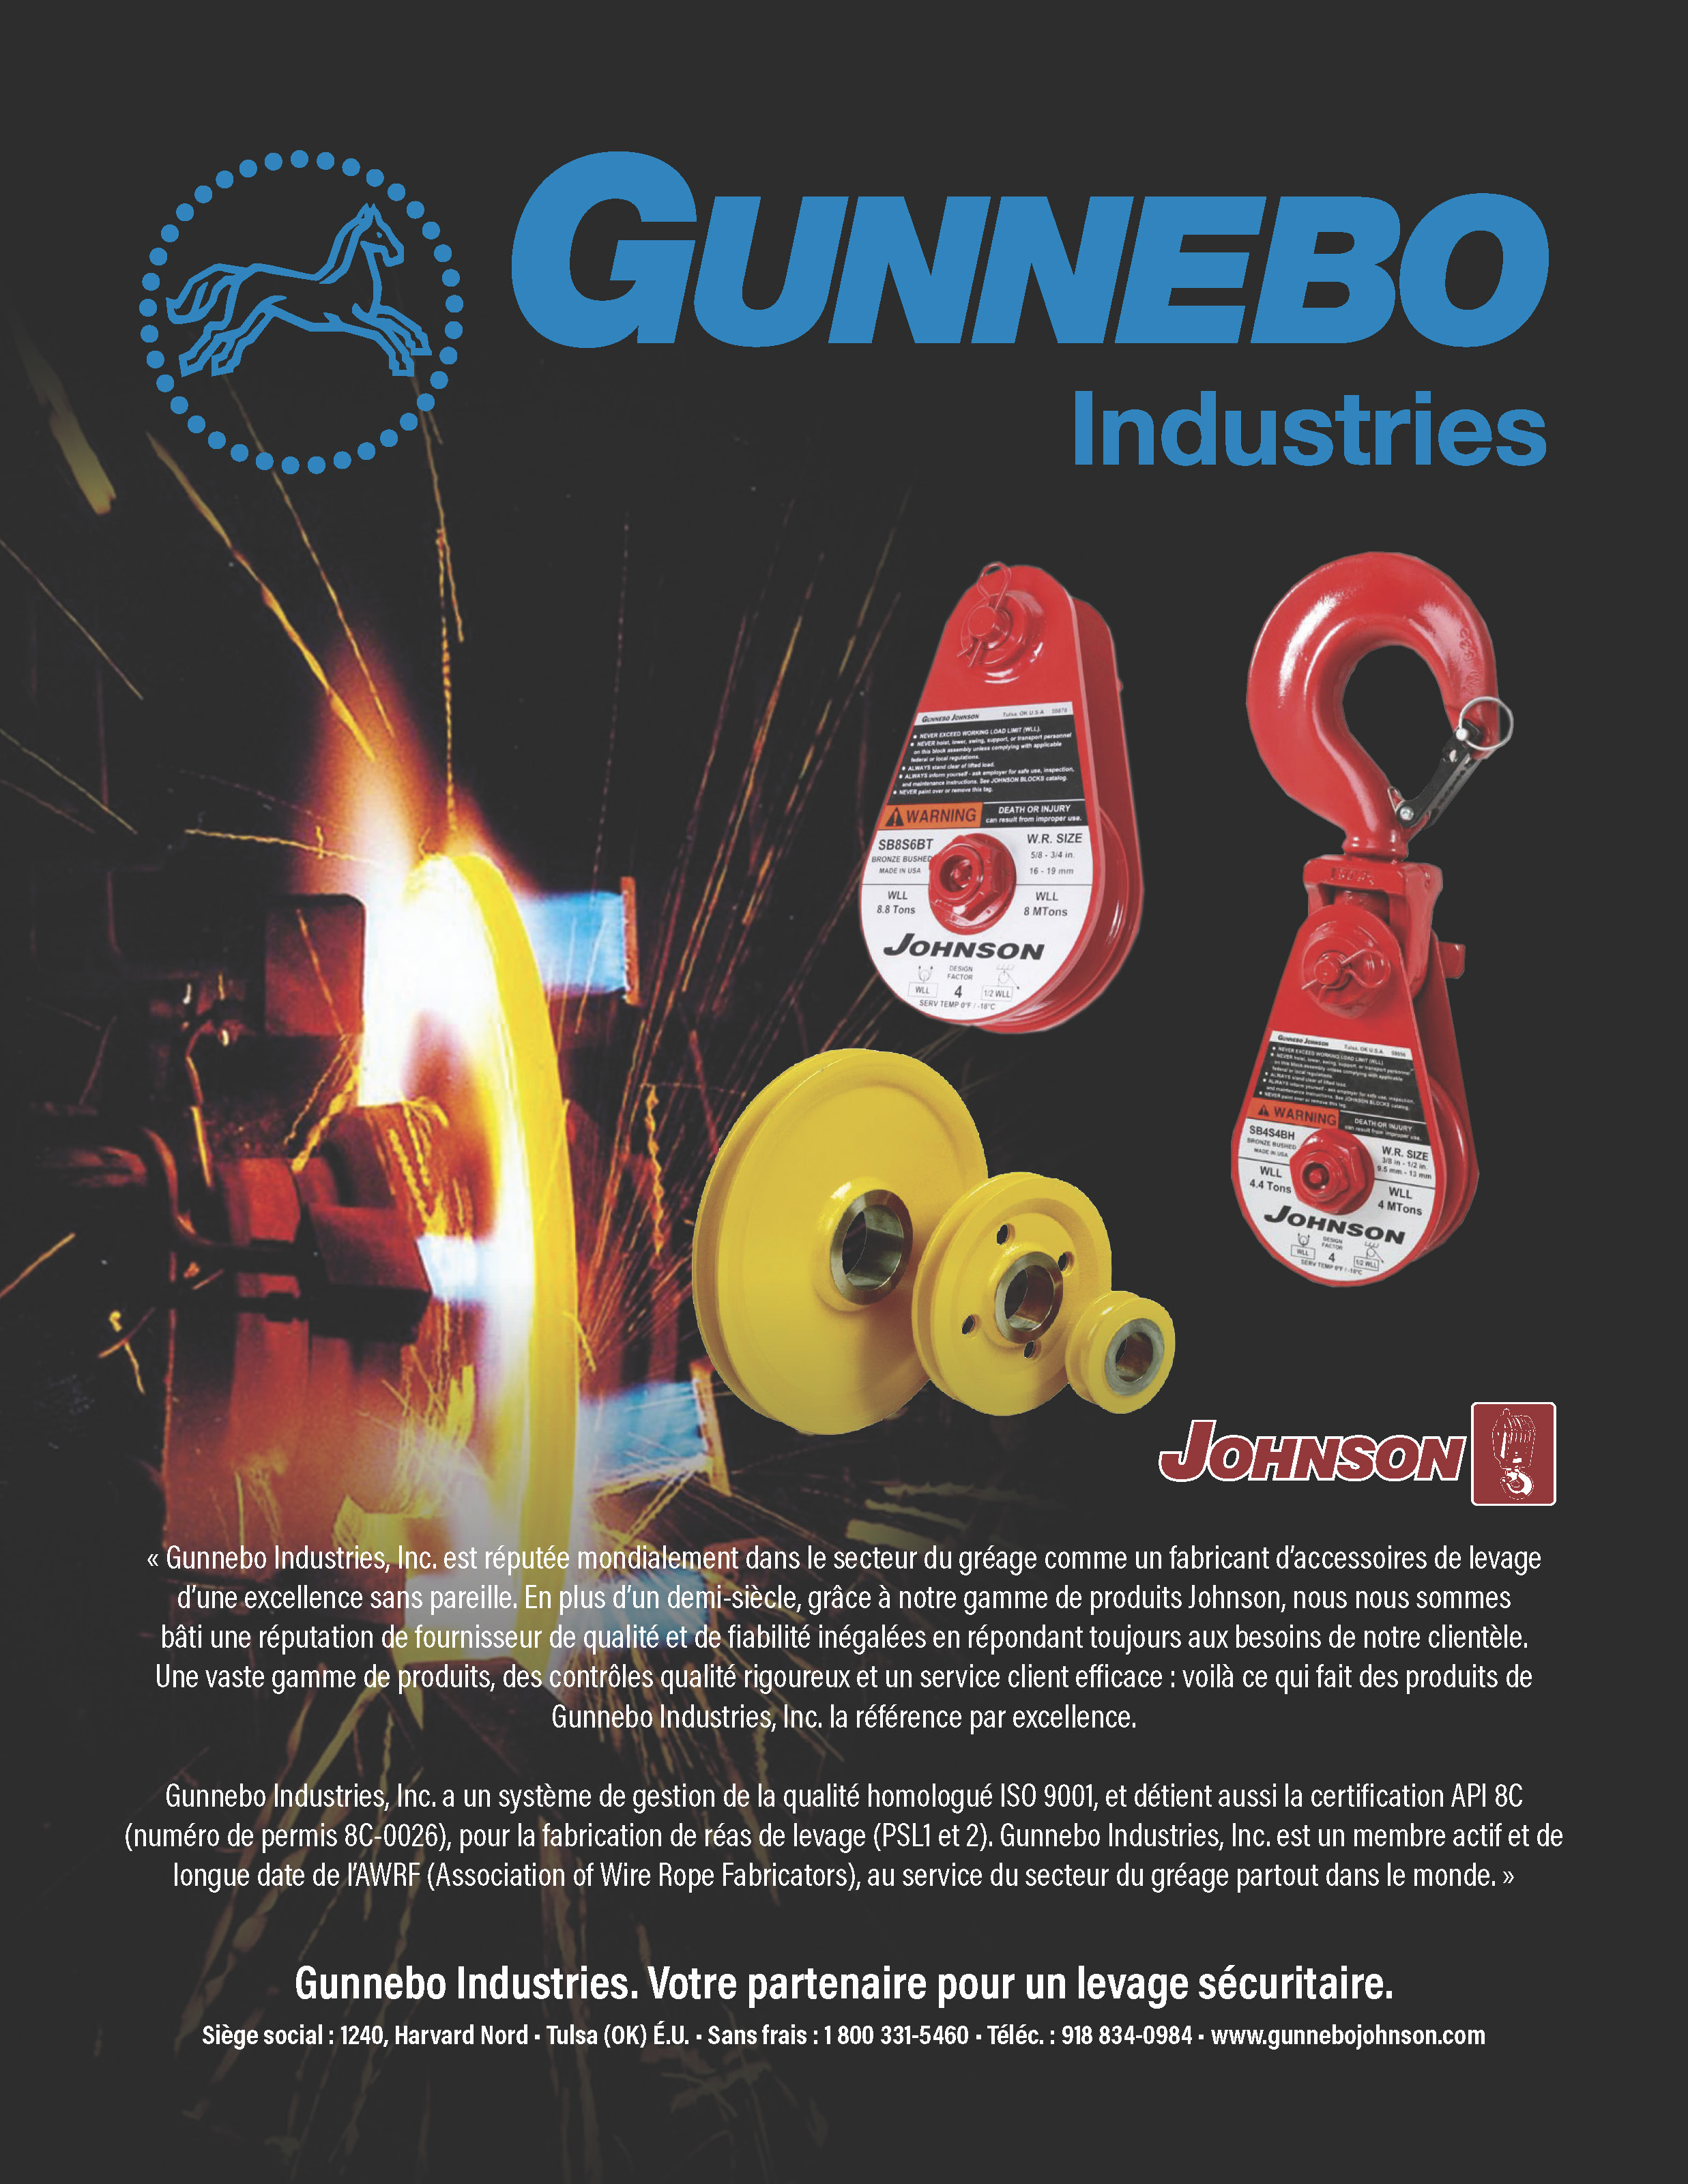 Gunnebo Industries